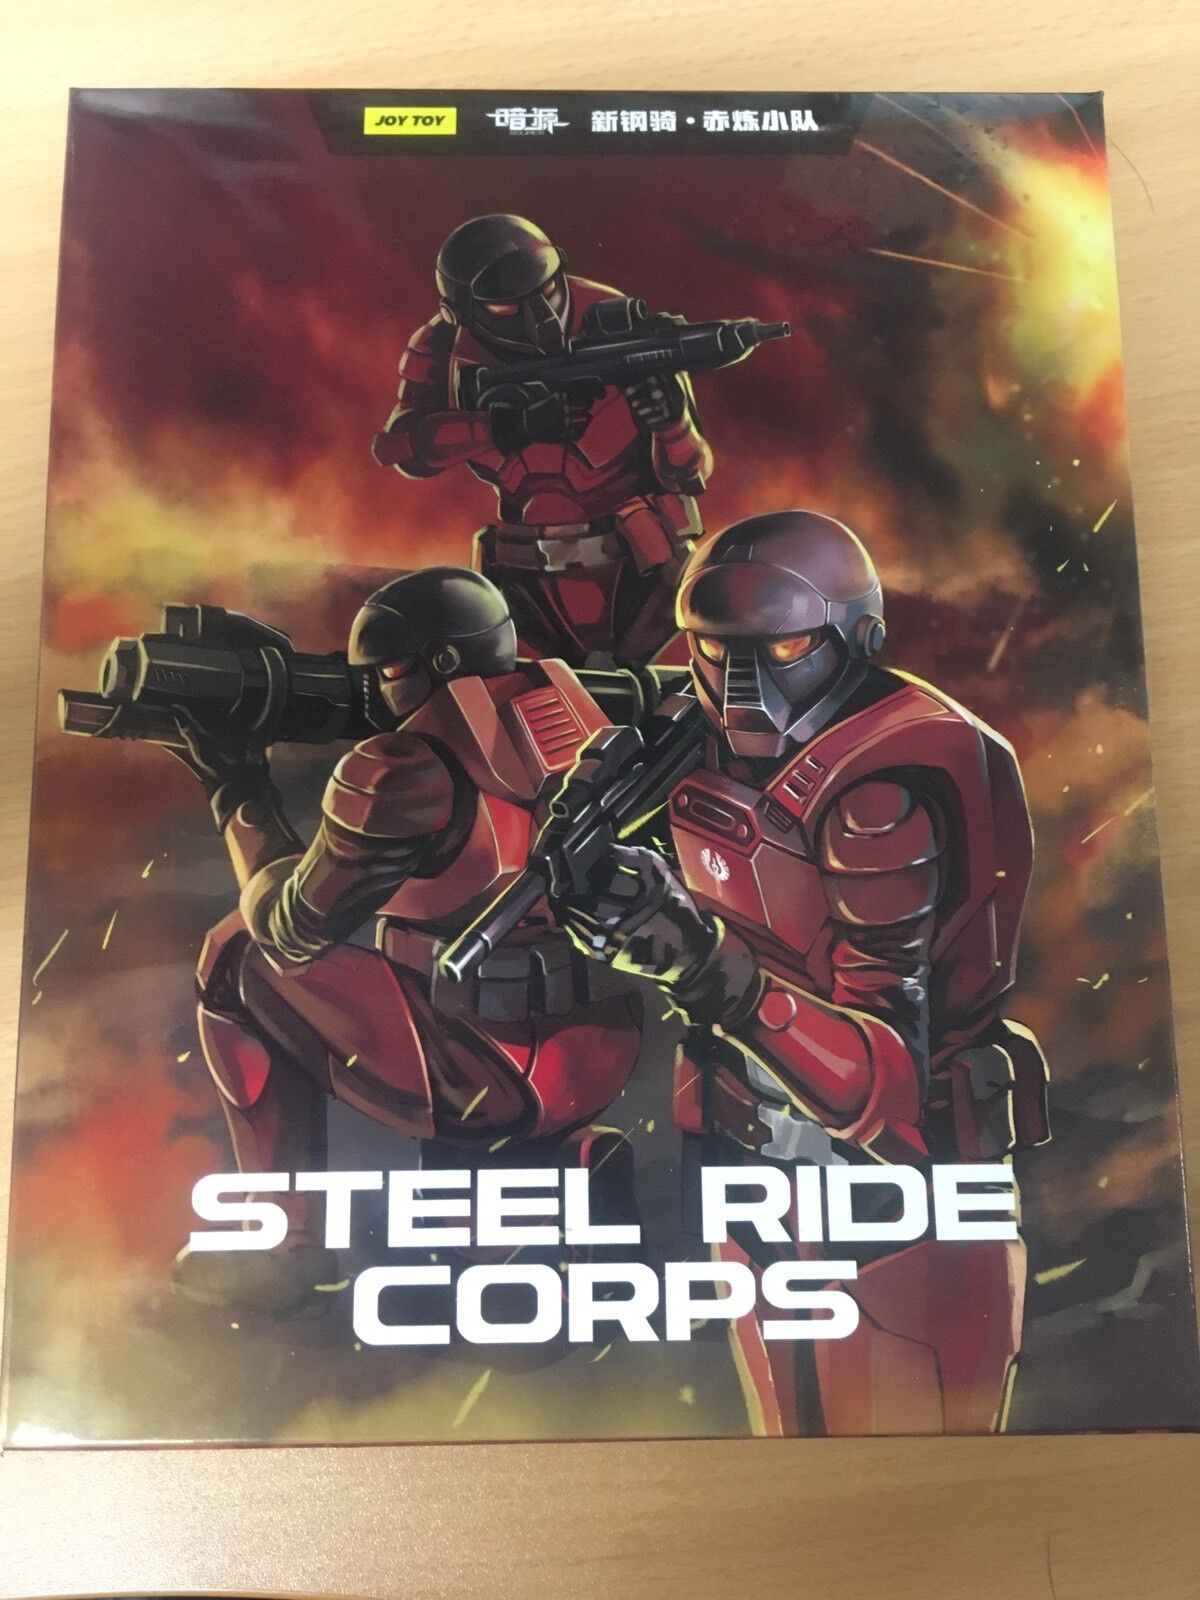 JOY TOY 4th Generation  New Honed Steel Ride Corps 1 27 Action Figures